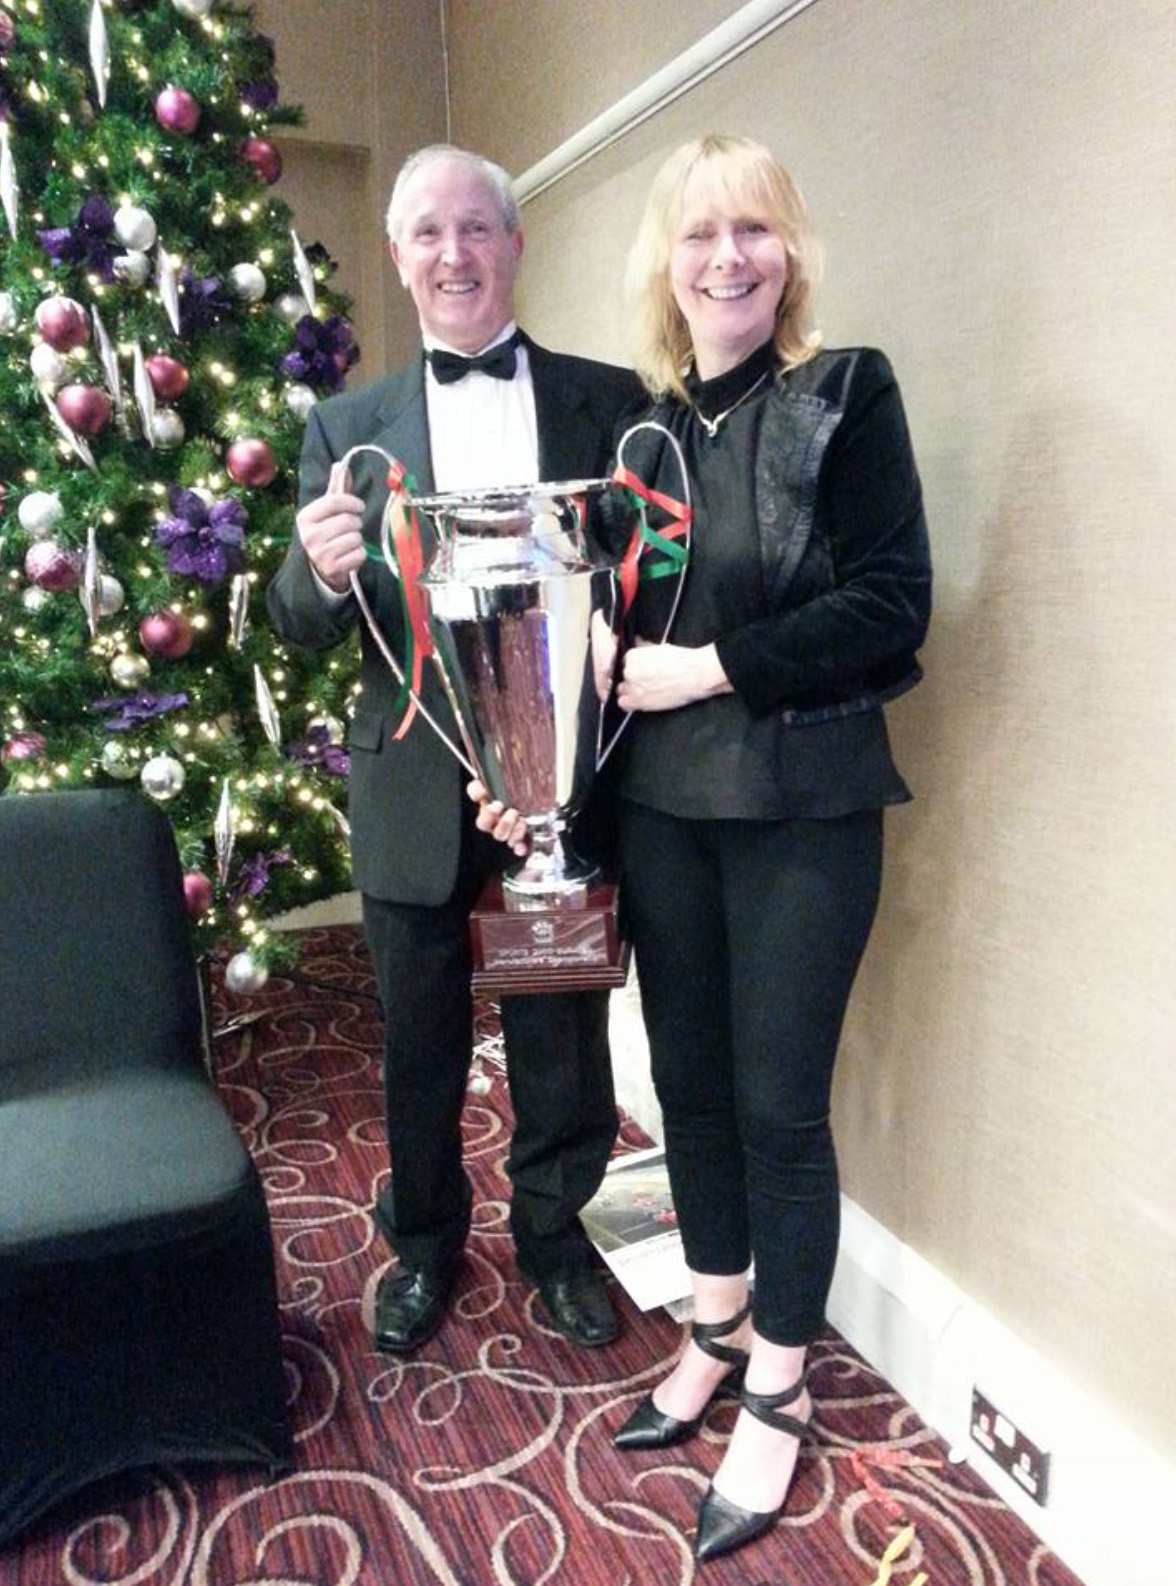 Clive Hayes and Cindy Pearce Manufacturers trophy Sports 2000 Championship 2016